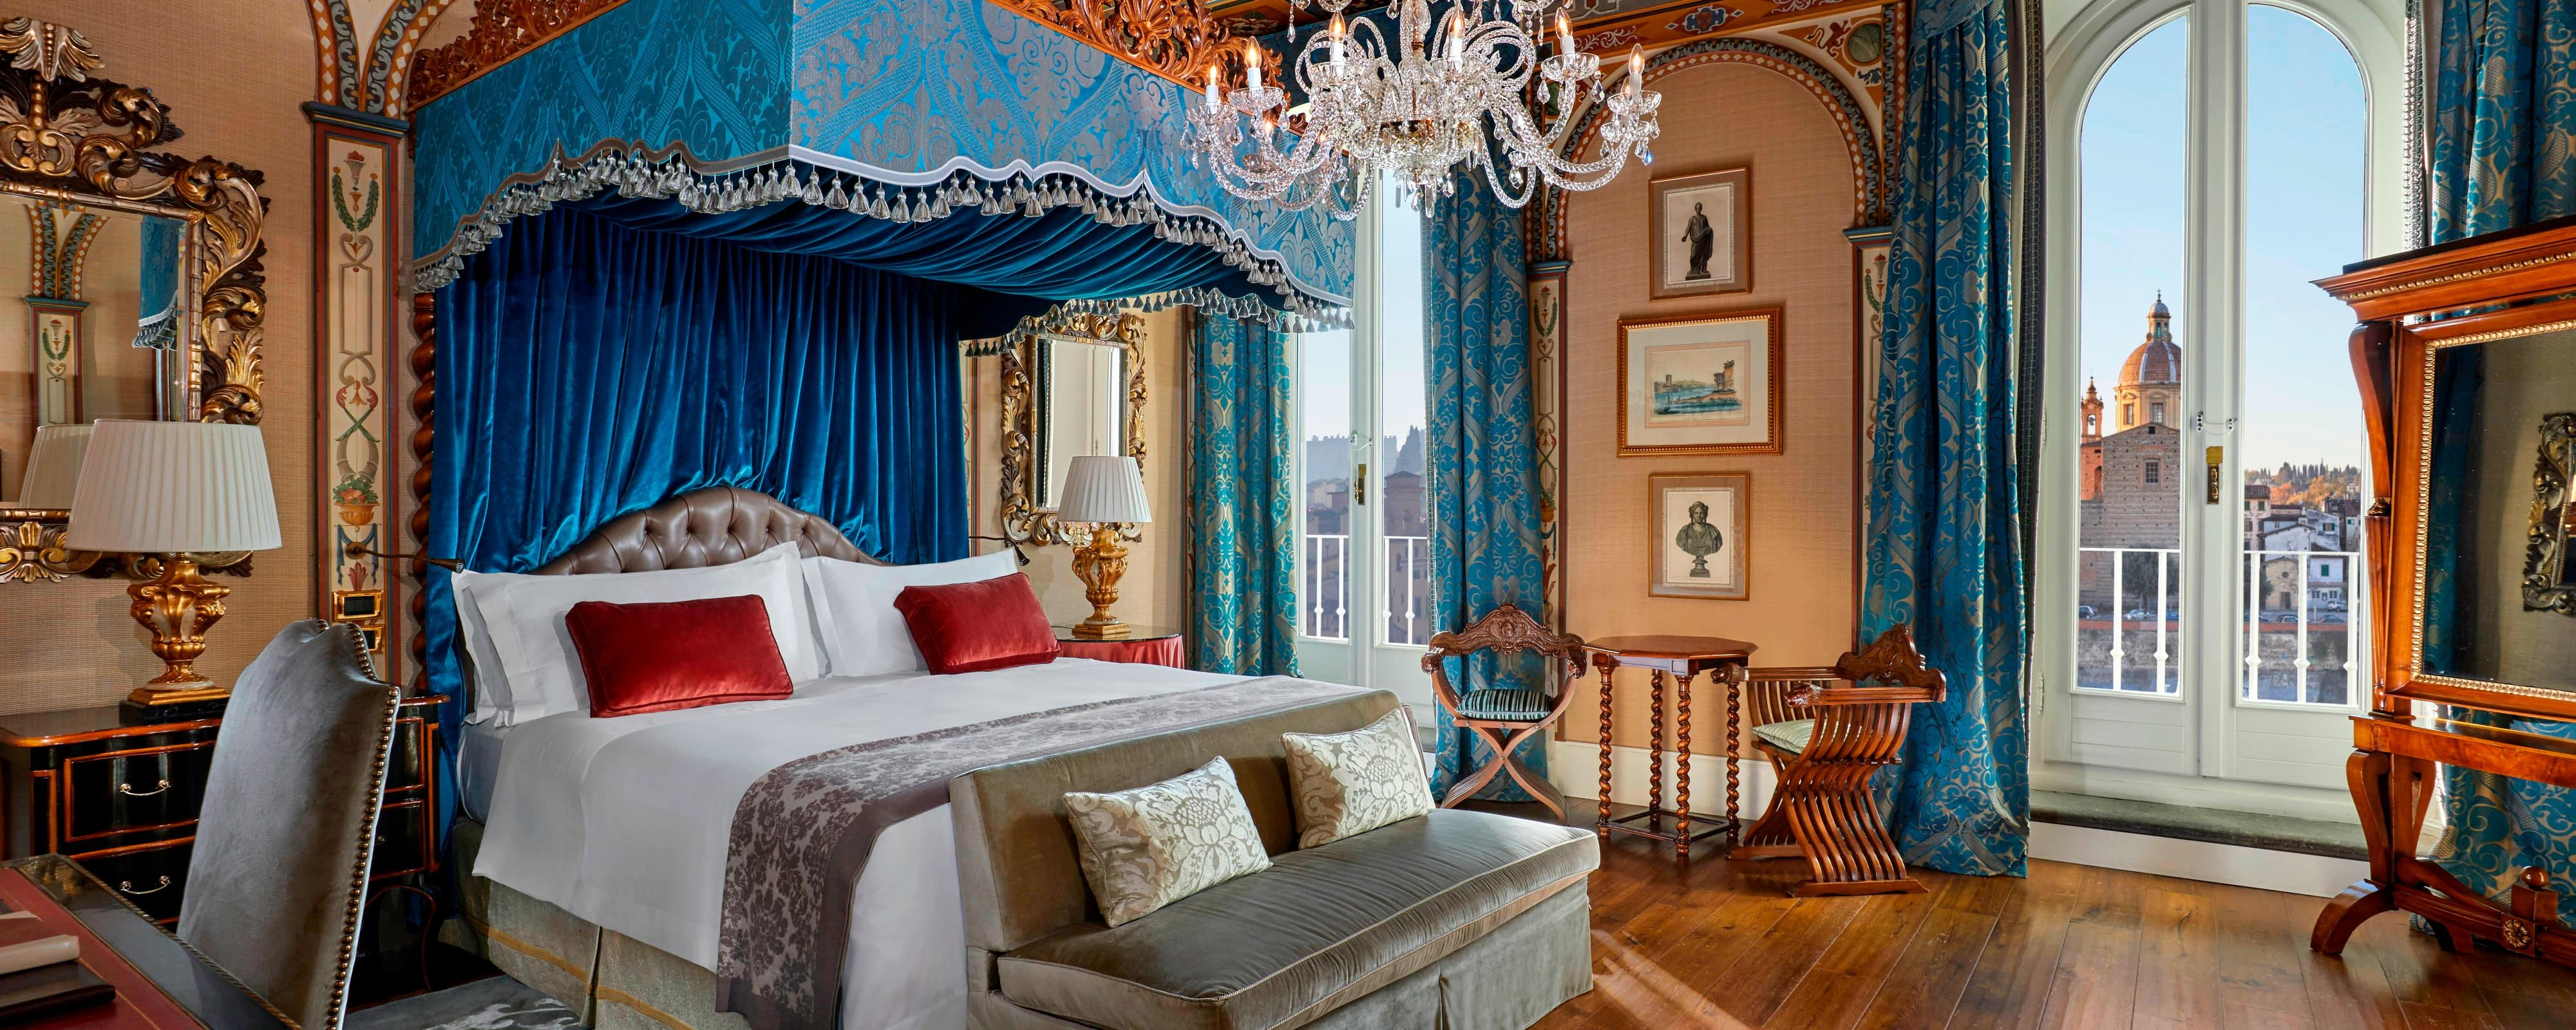 Royal Suite Gioconda Bedroom - Renaissance style